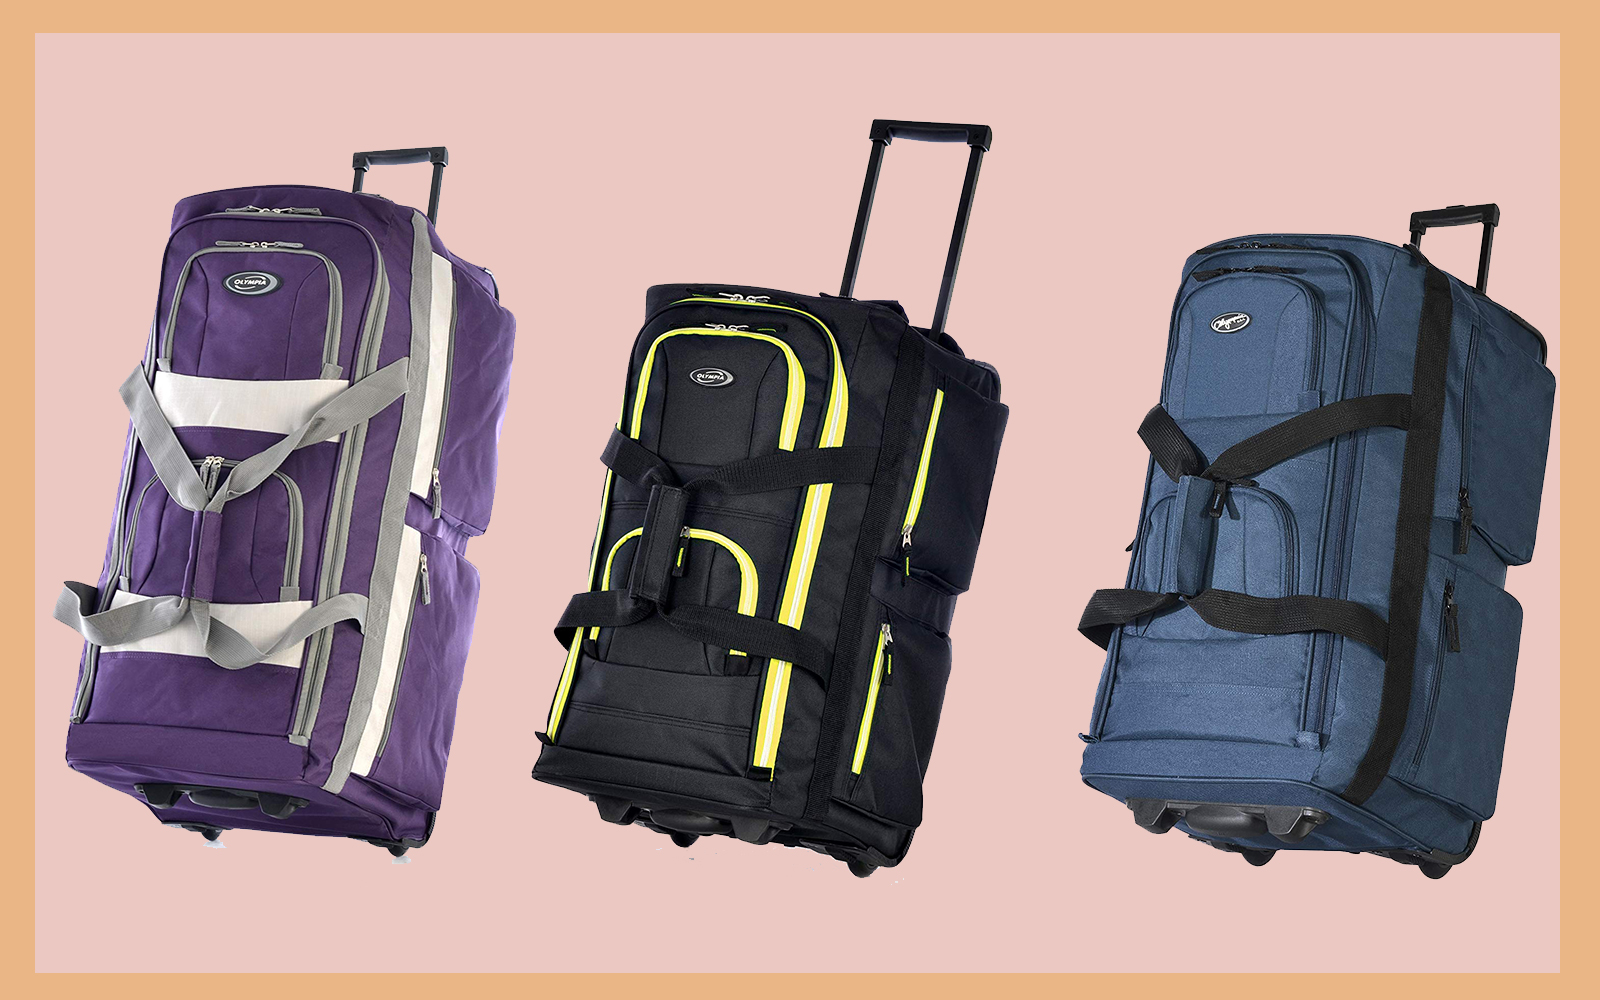 Amazon's Best-selling Duffel Bag Has 8 Spacious Pockets and Comes in 19 Different Colors